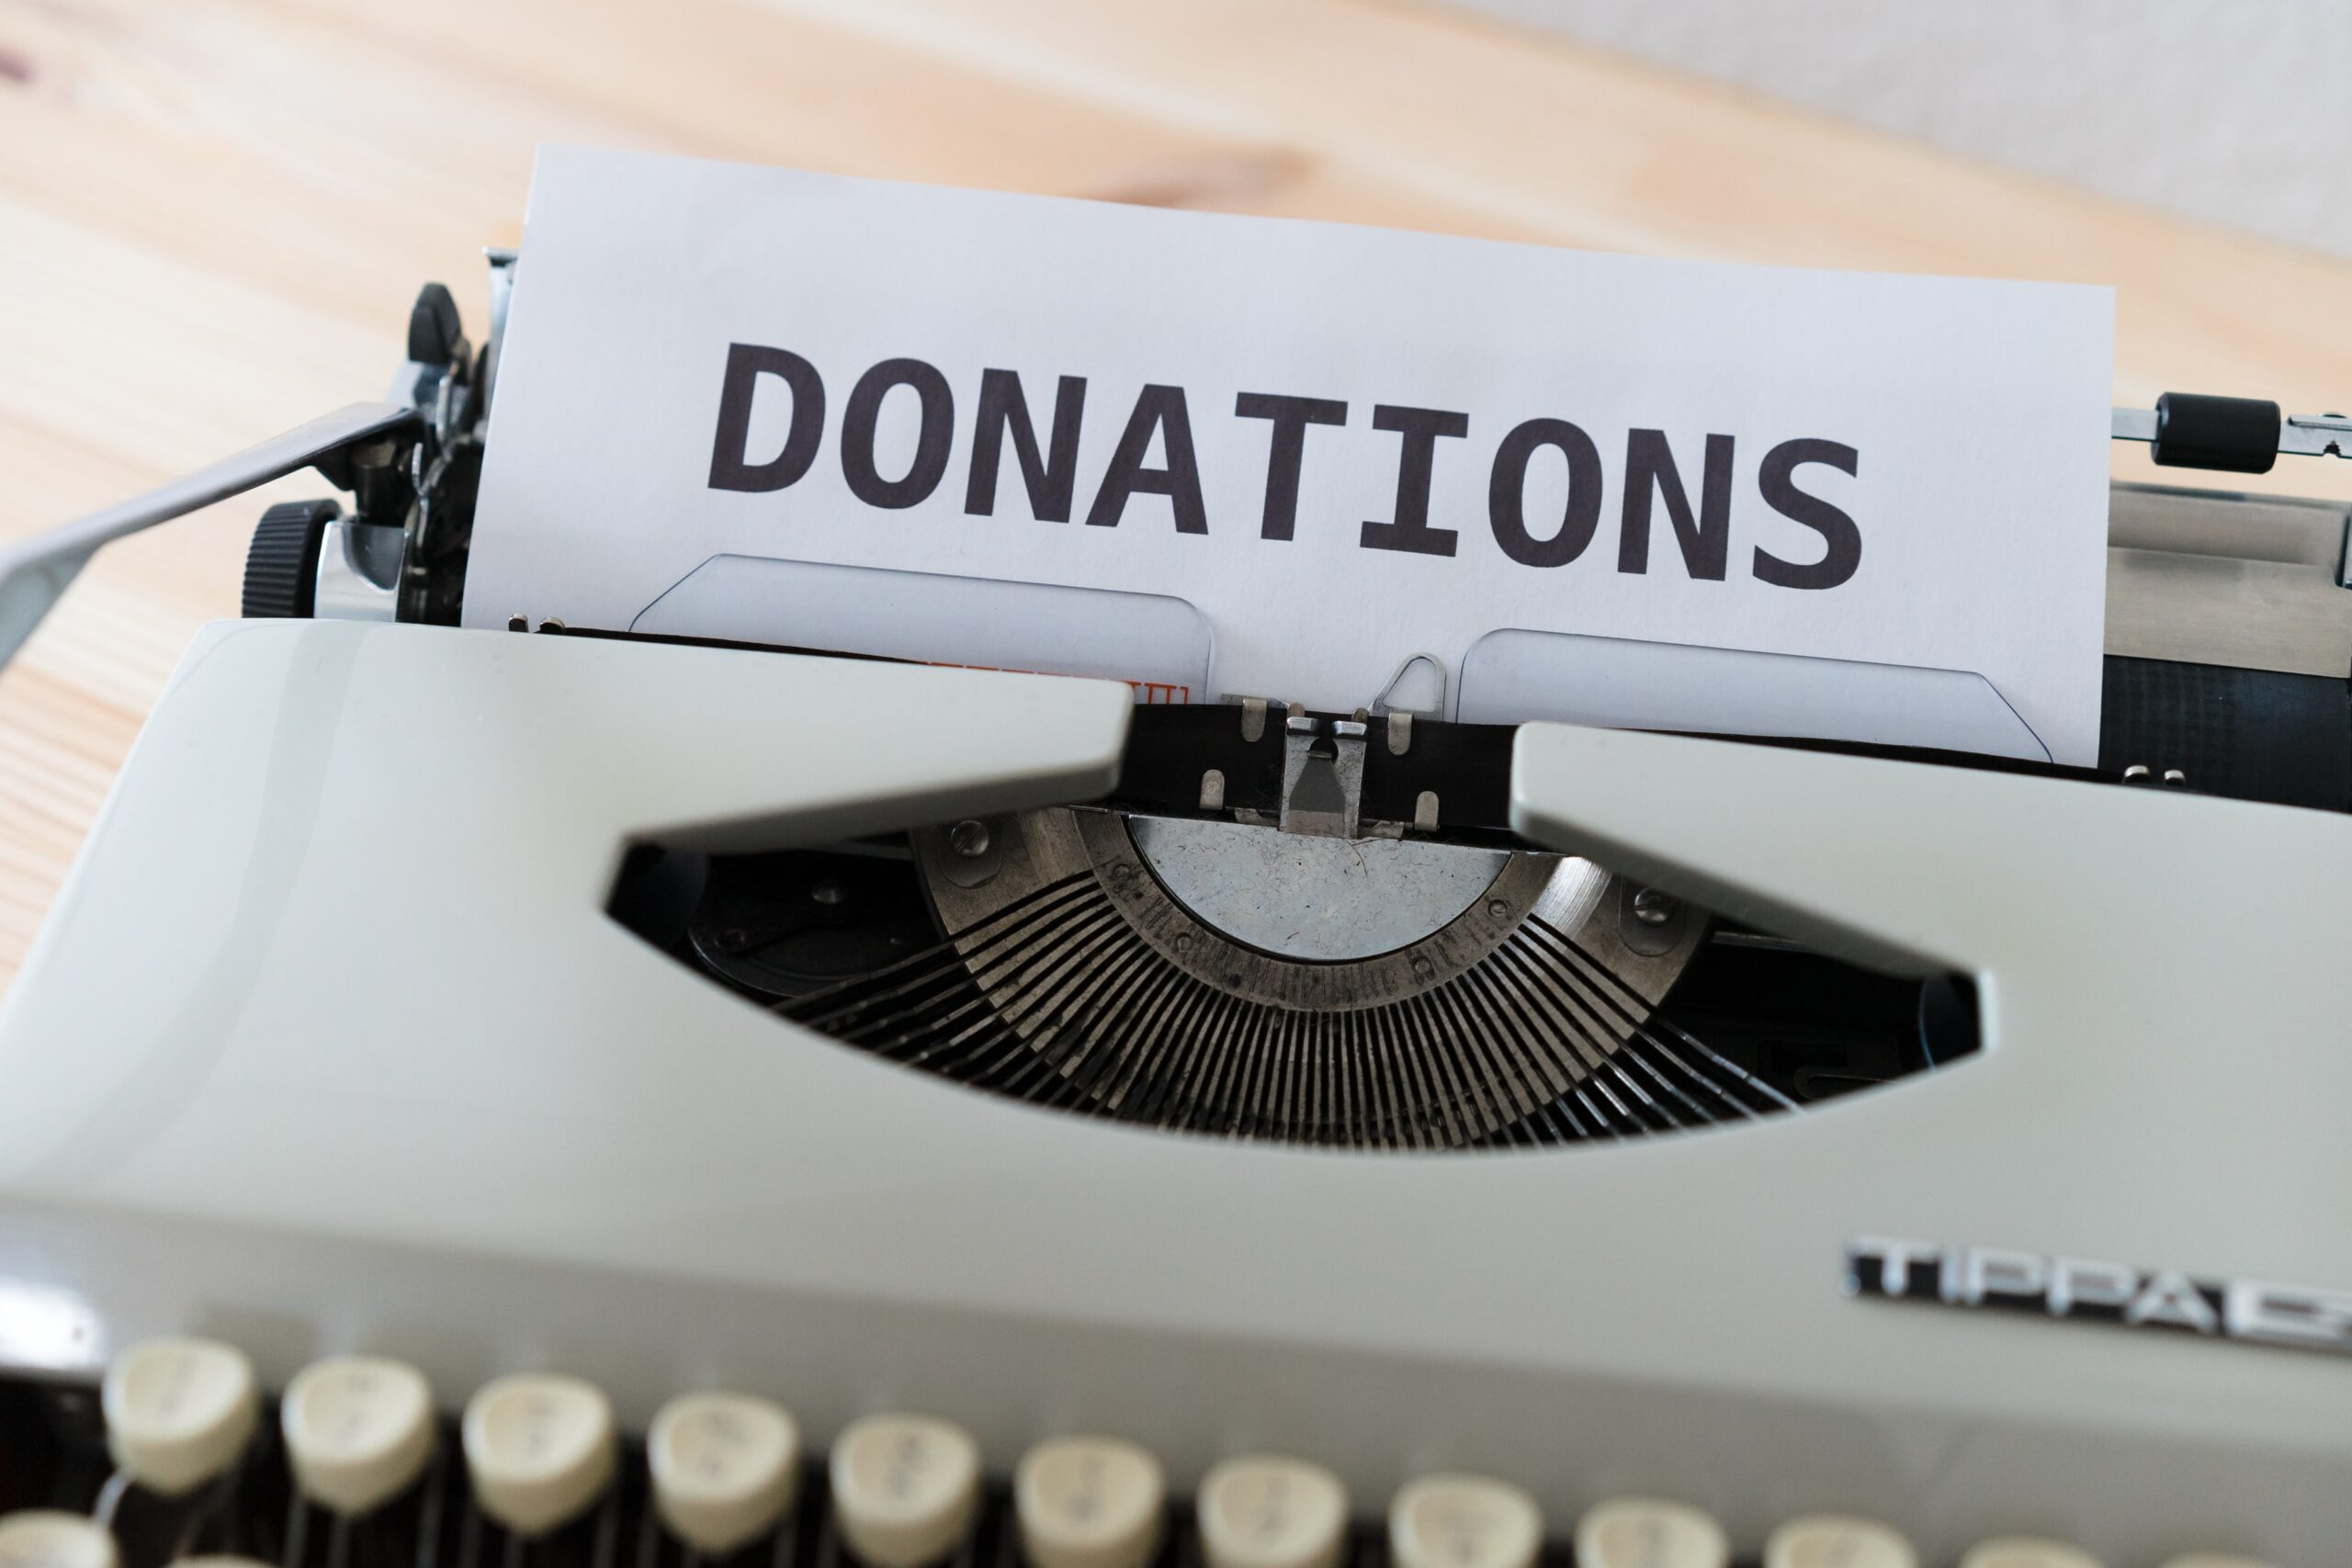 The most important thing to remember when fundraising